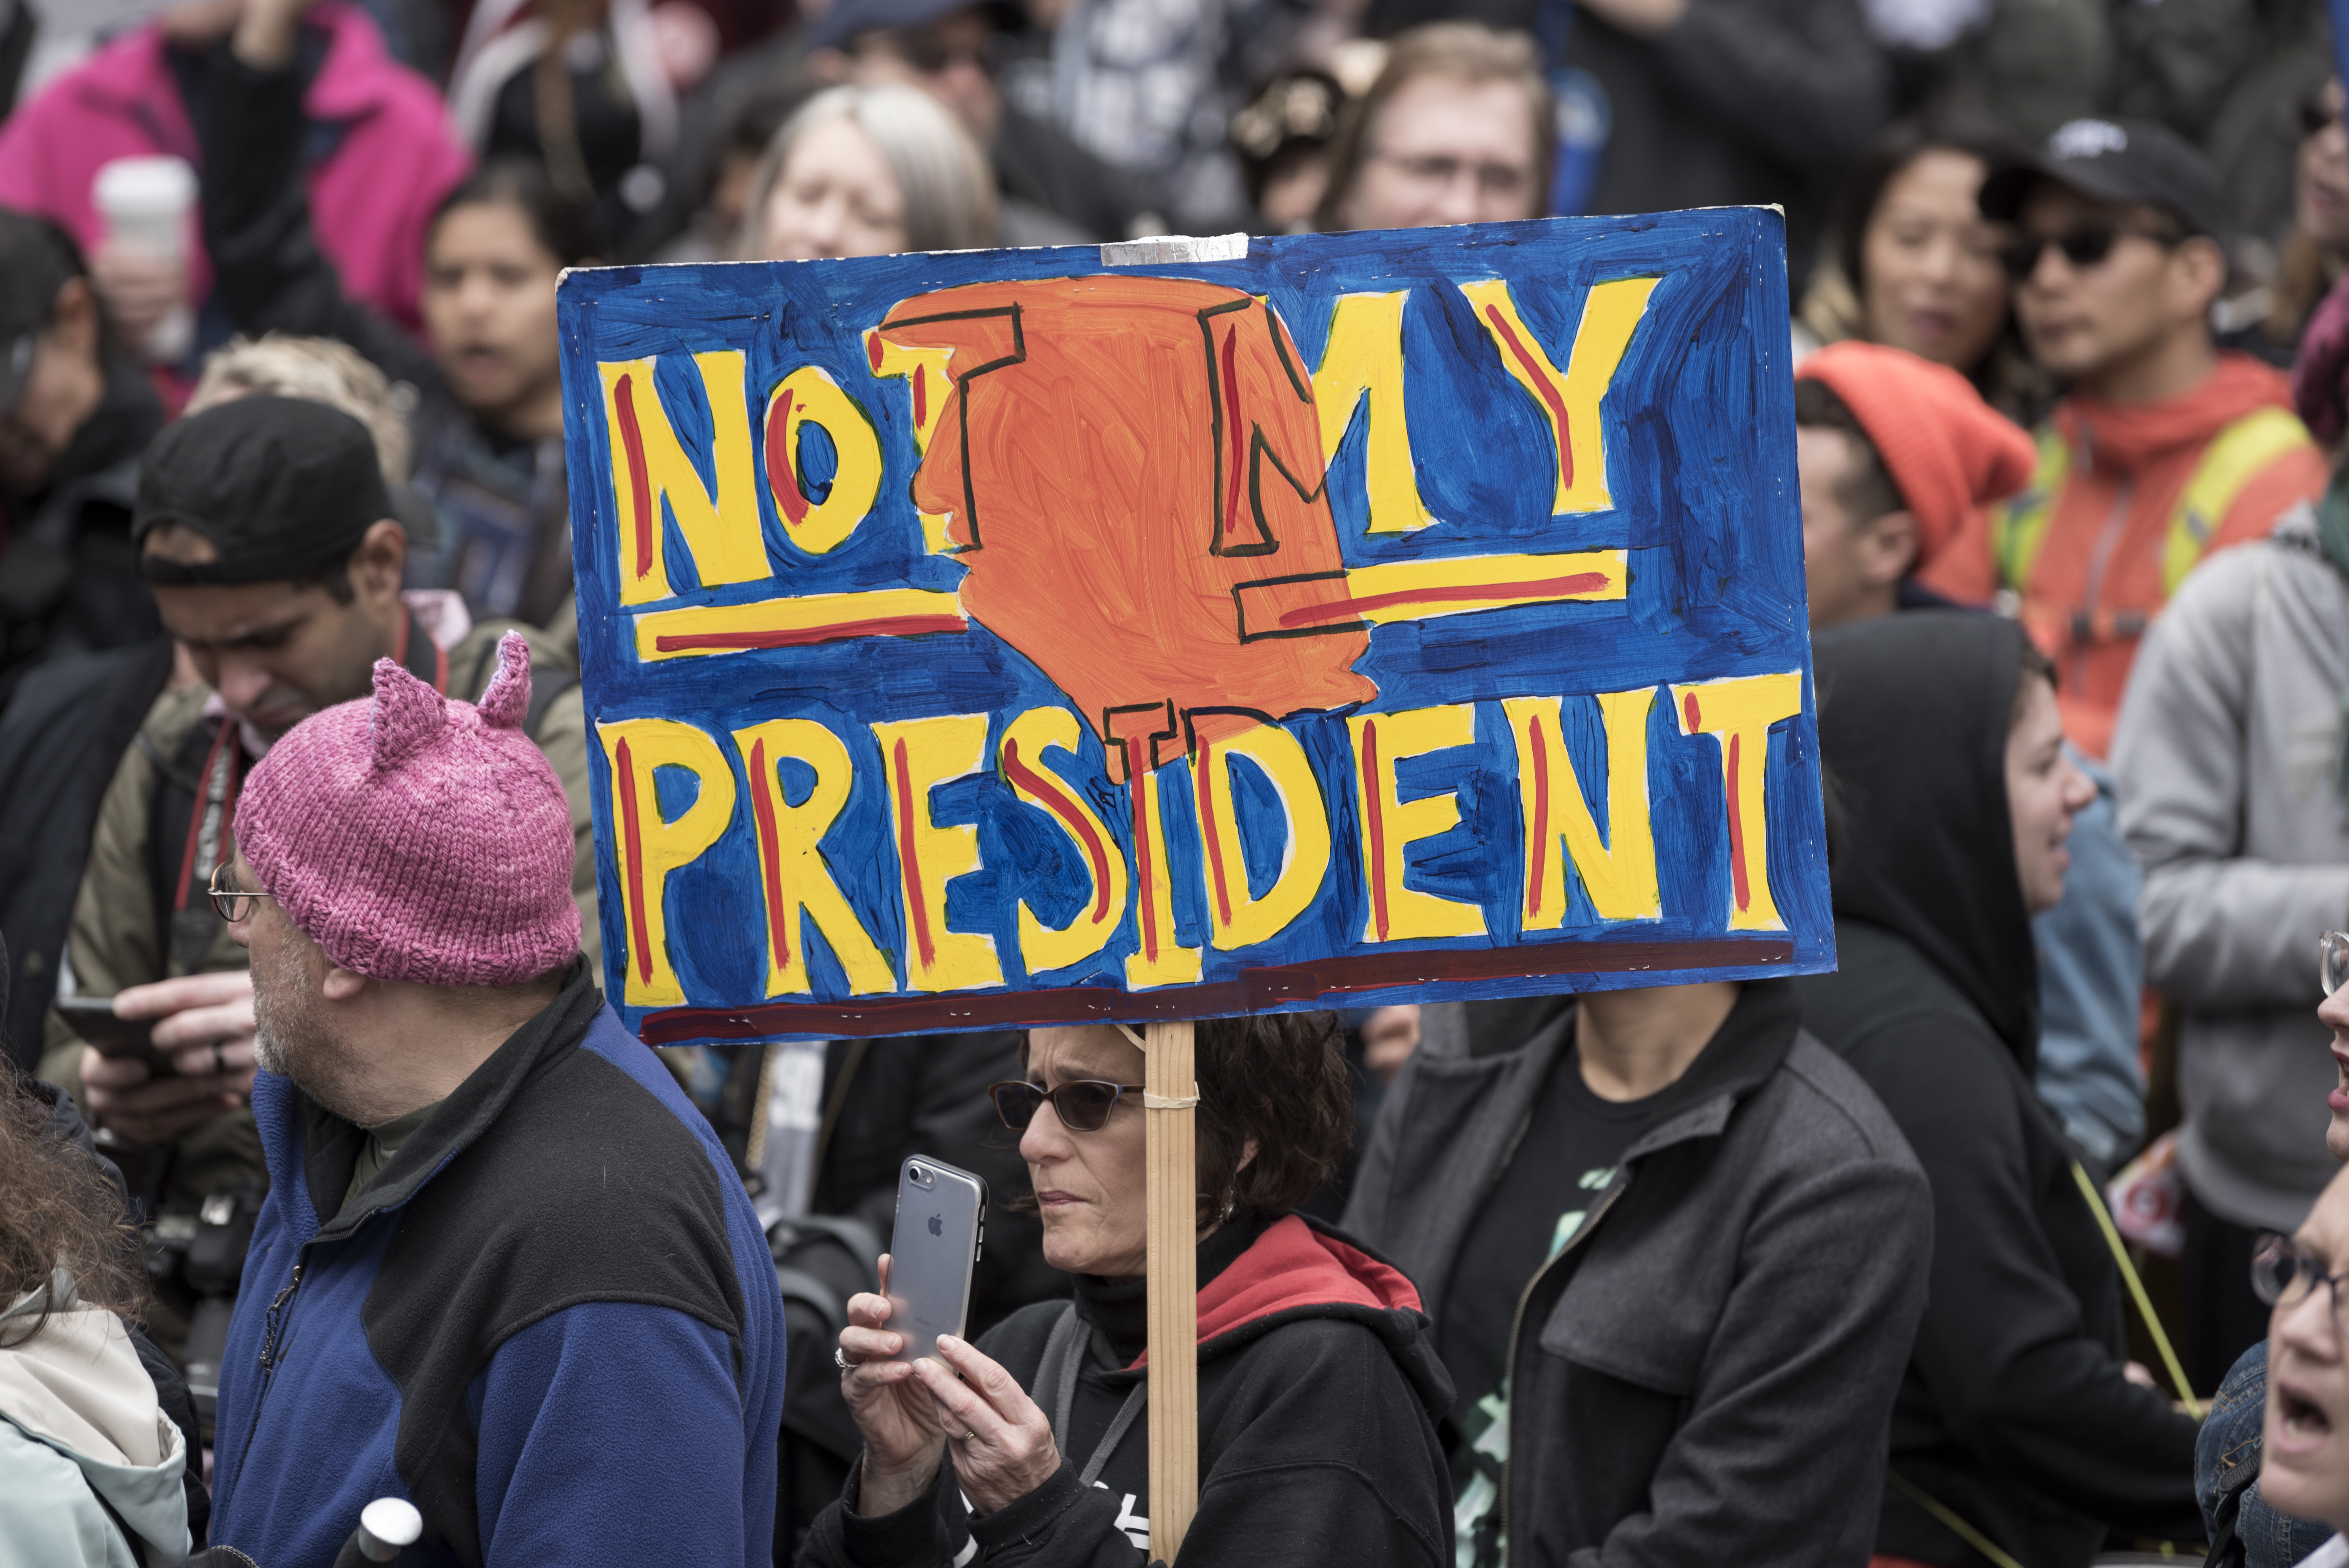 CA: Anti-Trump Presidents' Day protest in Los Angeles